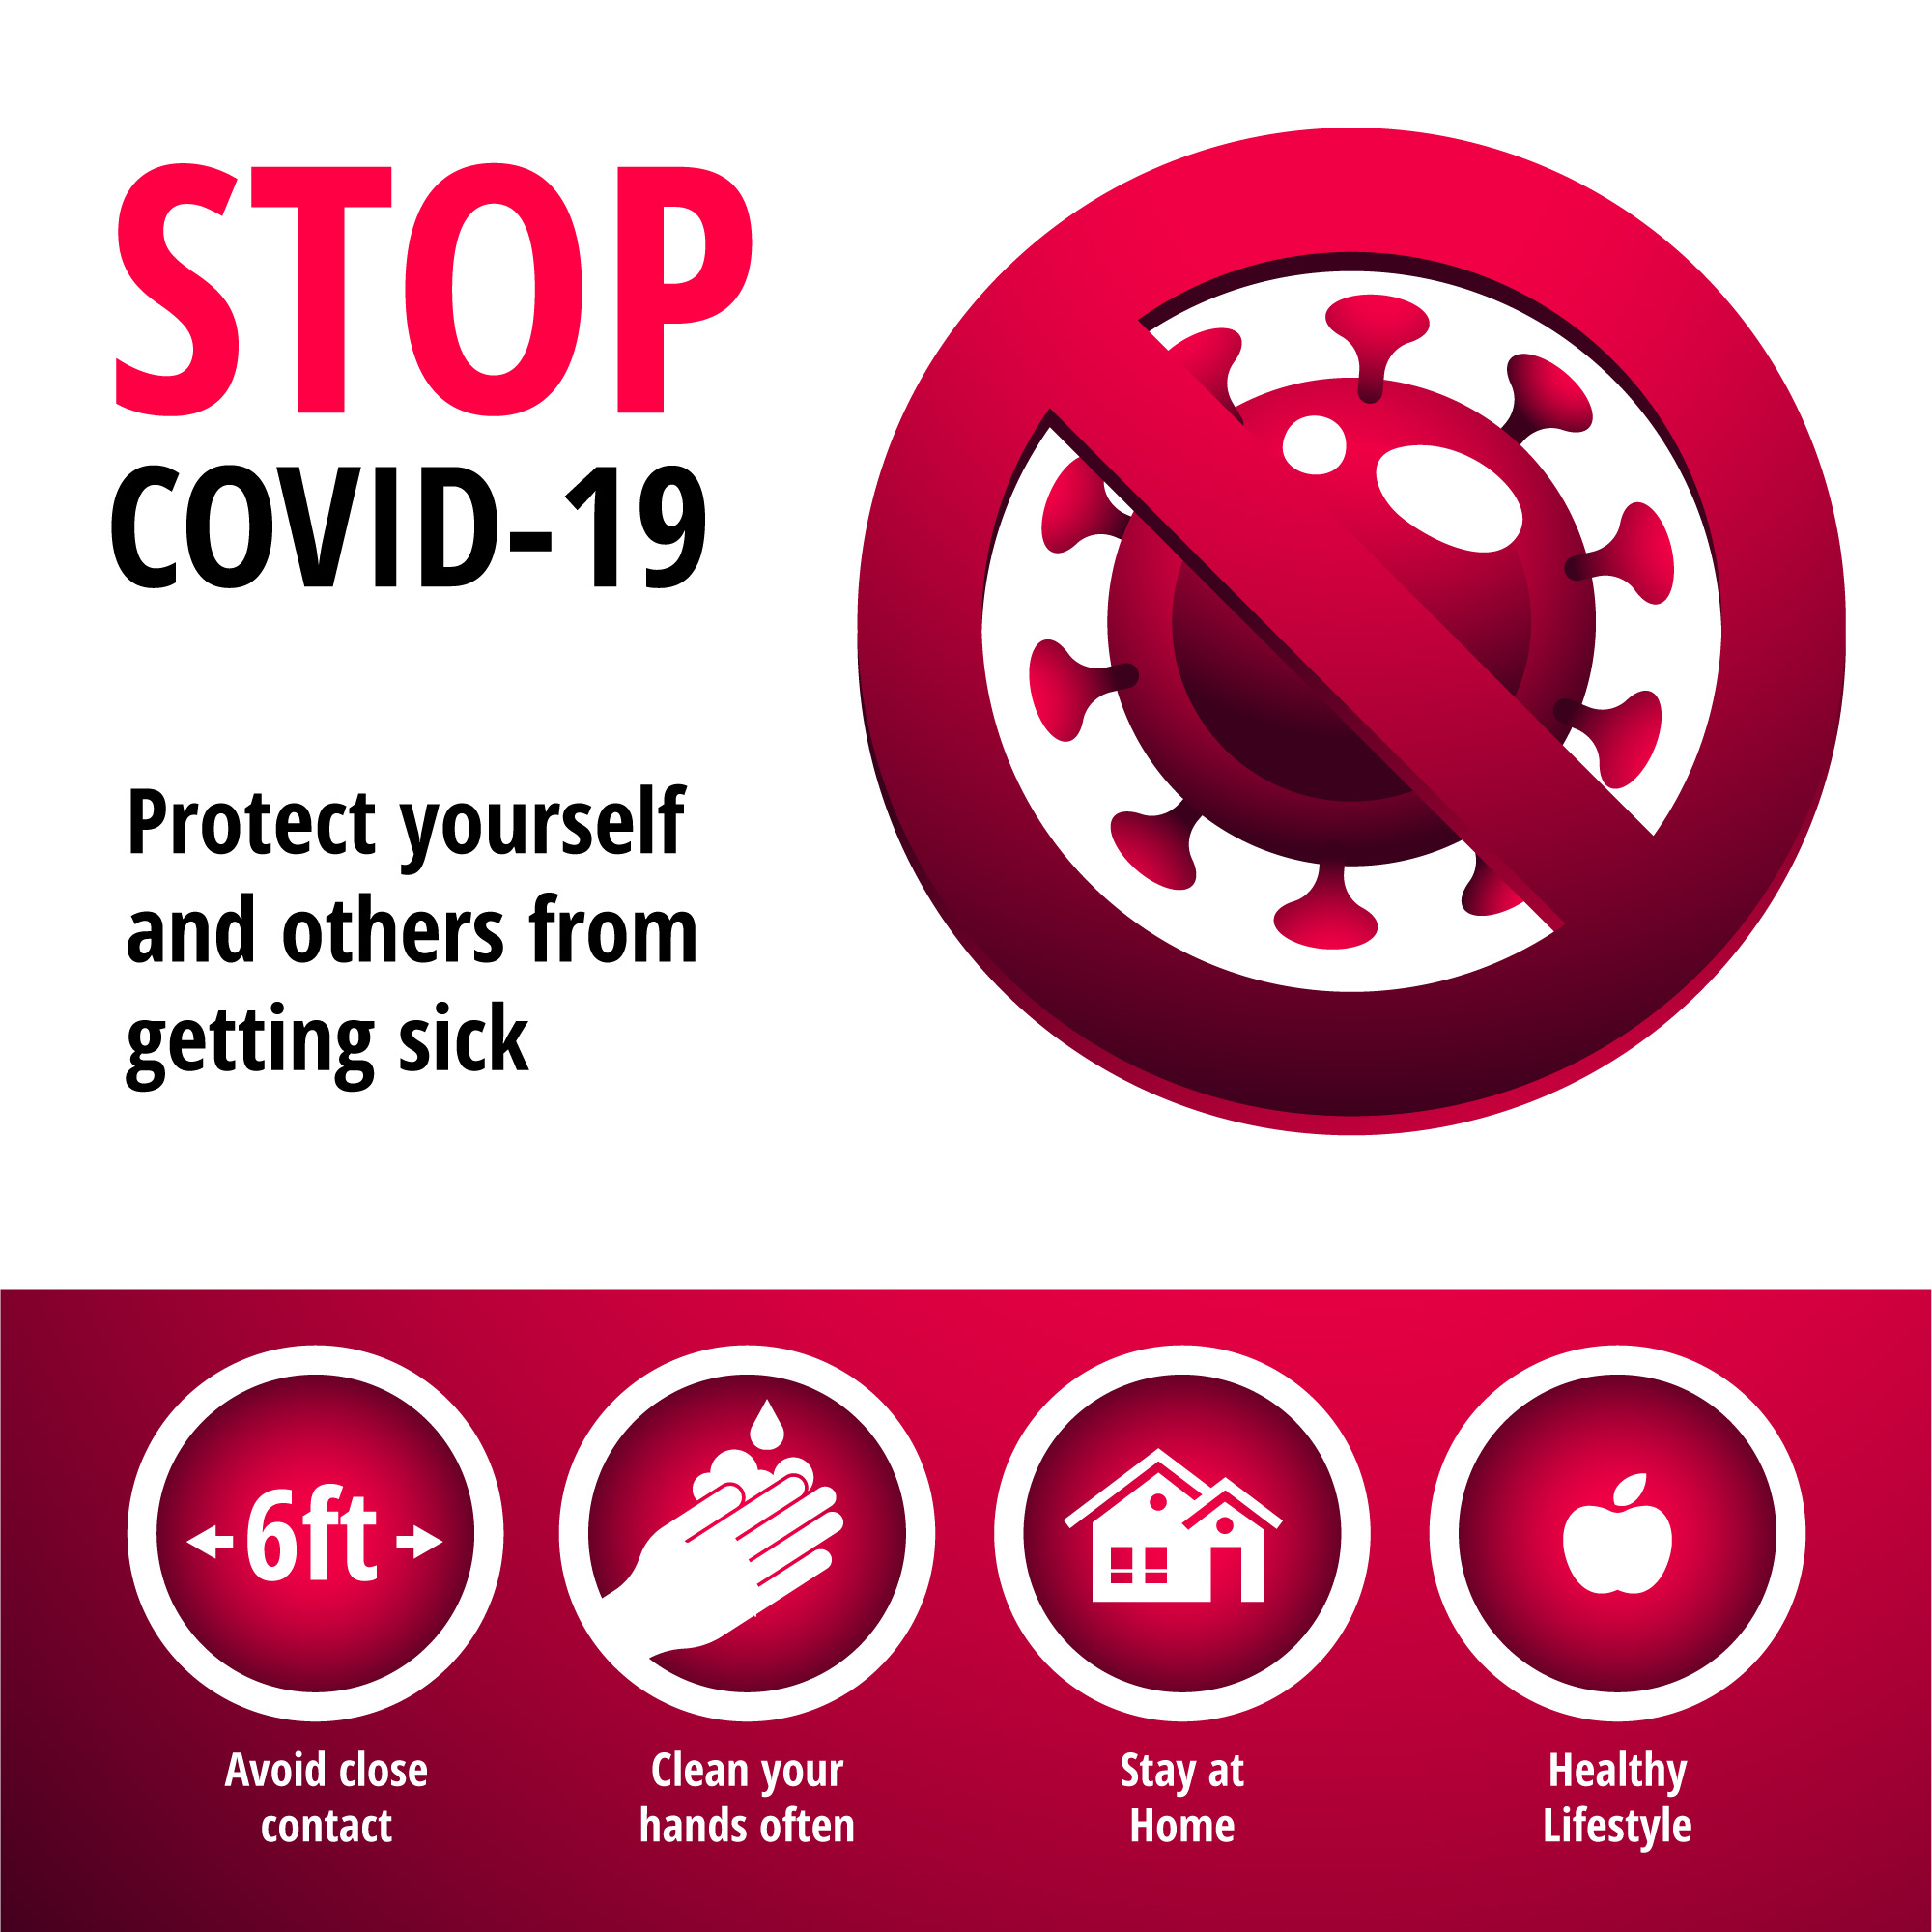 Covid 19 Policy and Procedures